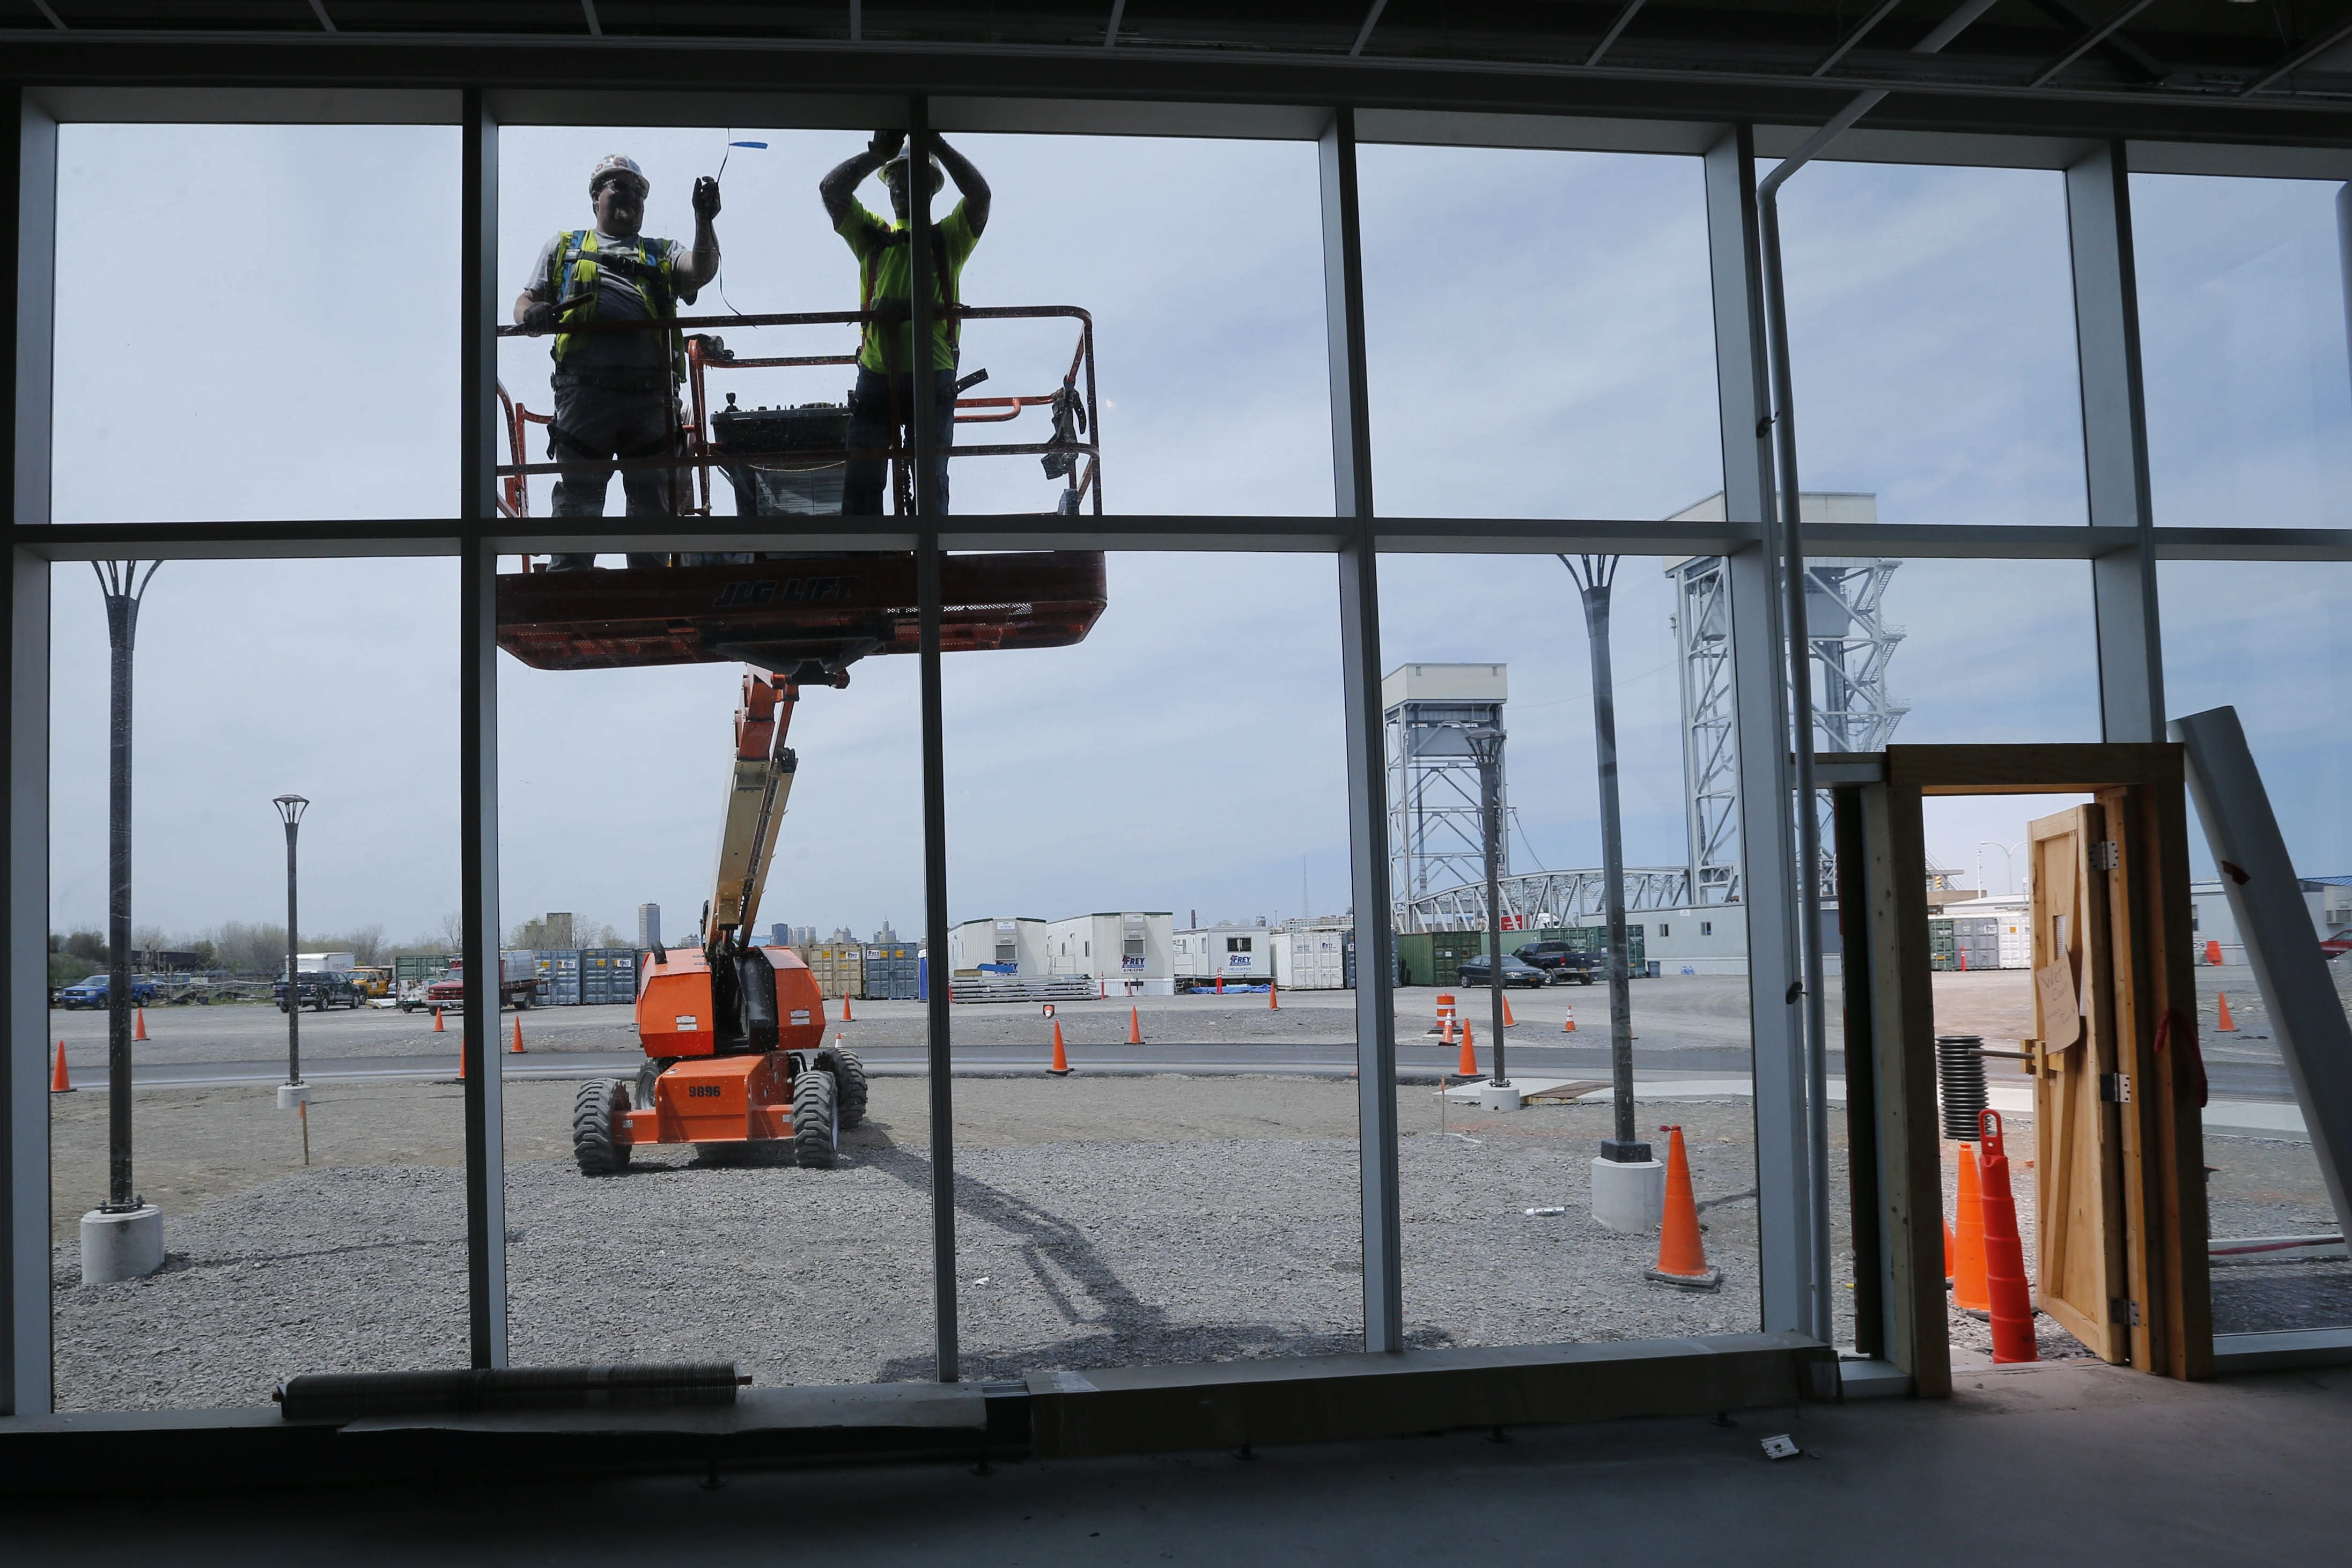 Workers weatherproof the glass facade of the offices at the massive SolarCity manufacturing facility at RiverBend in May 2016. The factory is now largely complete and awaiting production. (Derek Gee/Buffalo News file photo)